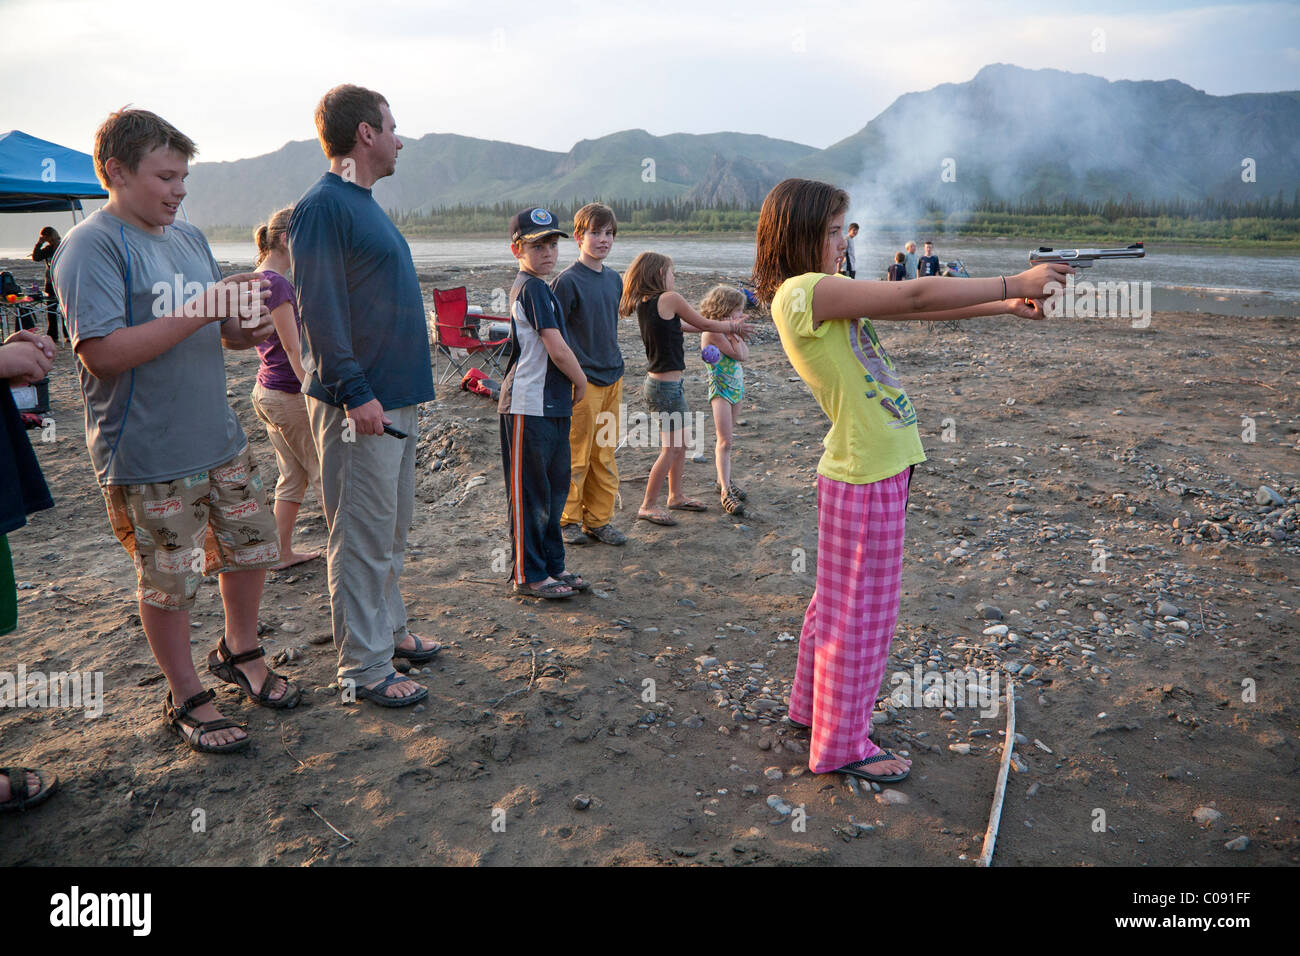 Young girl shoots a pistol in her pajamas and flip-flops at the edge of the Yukon River, Yukon-Charley Rivers National - Stock Image